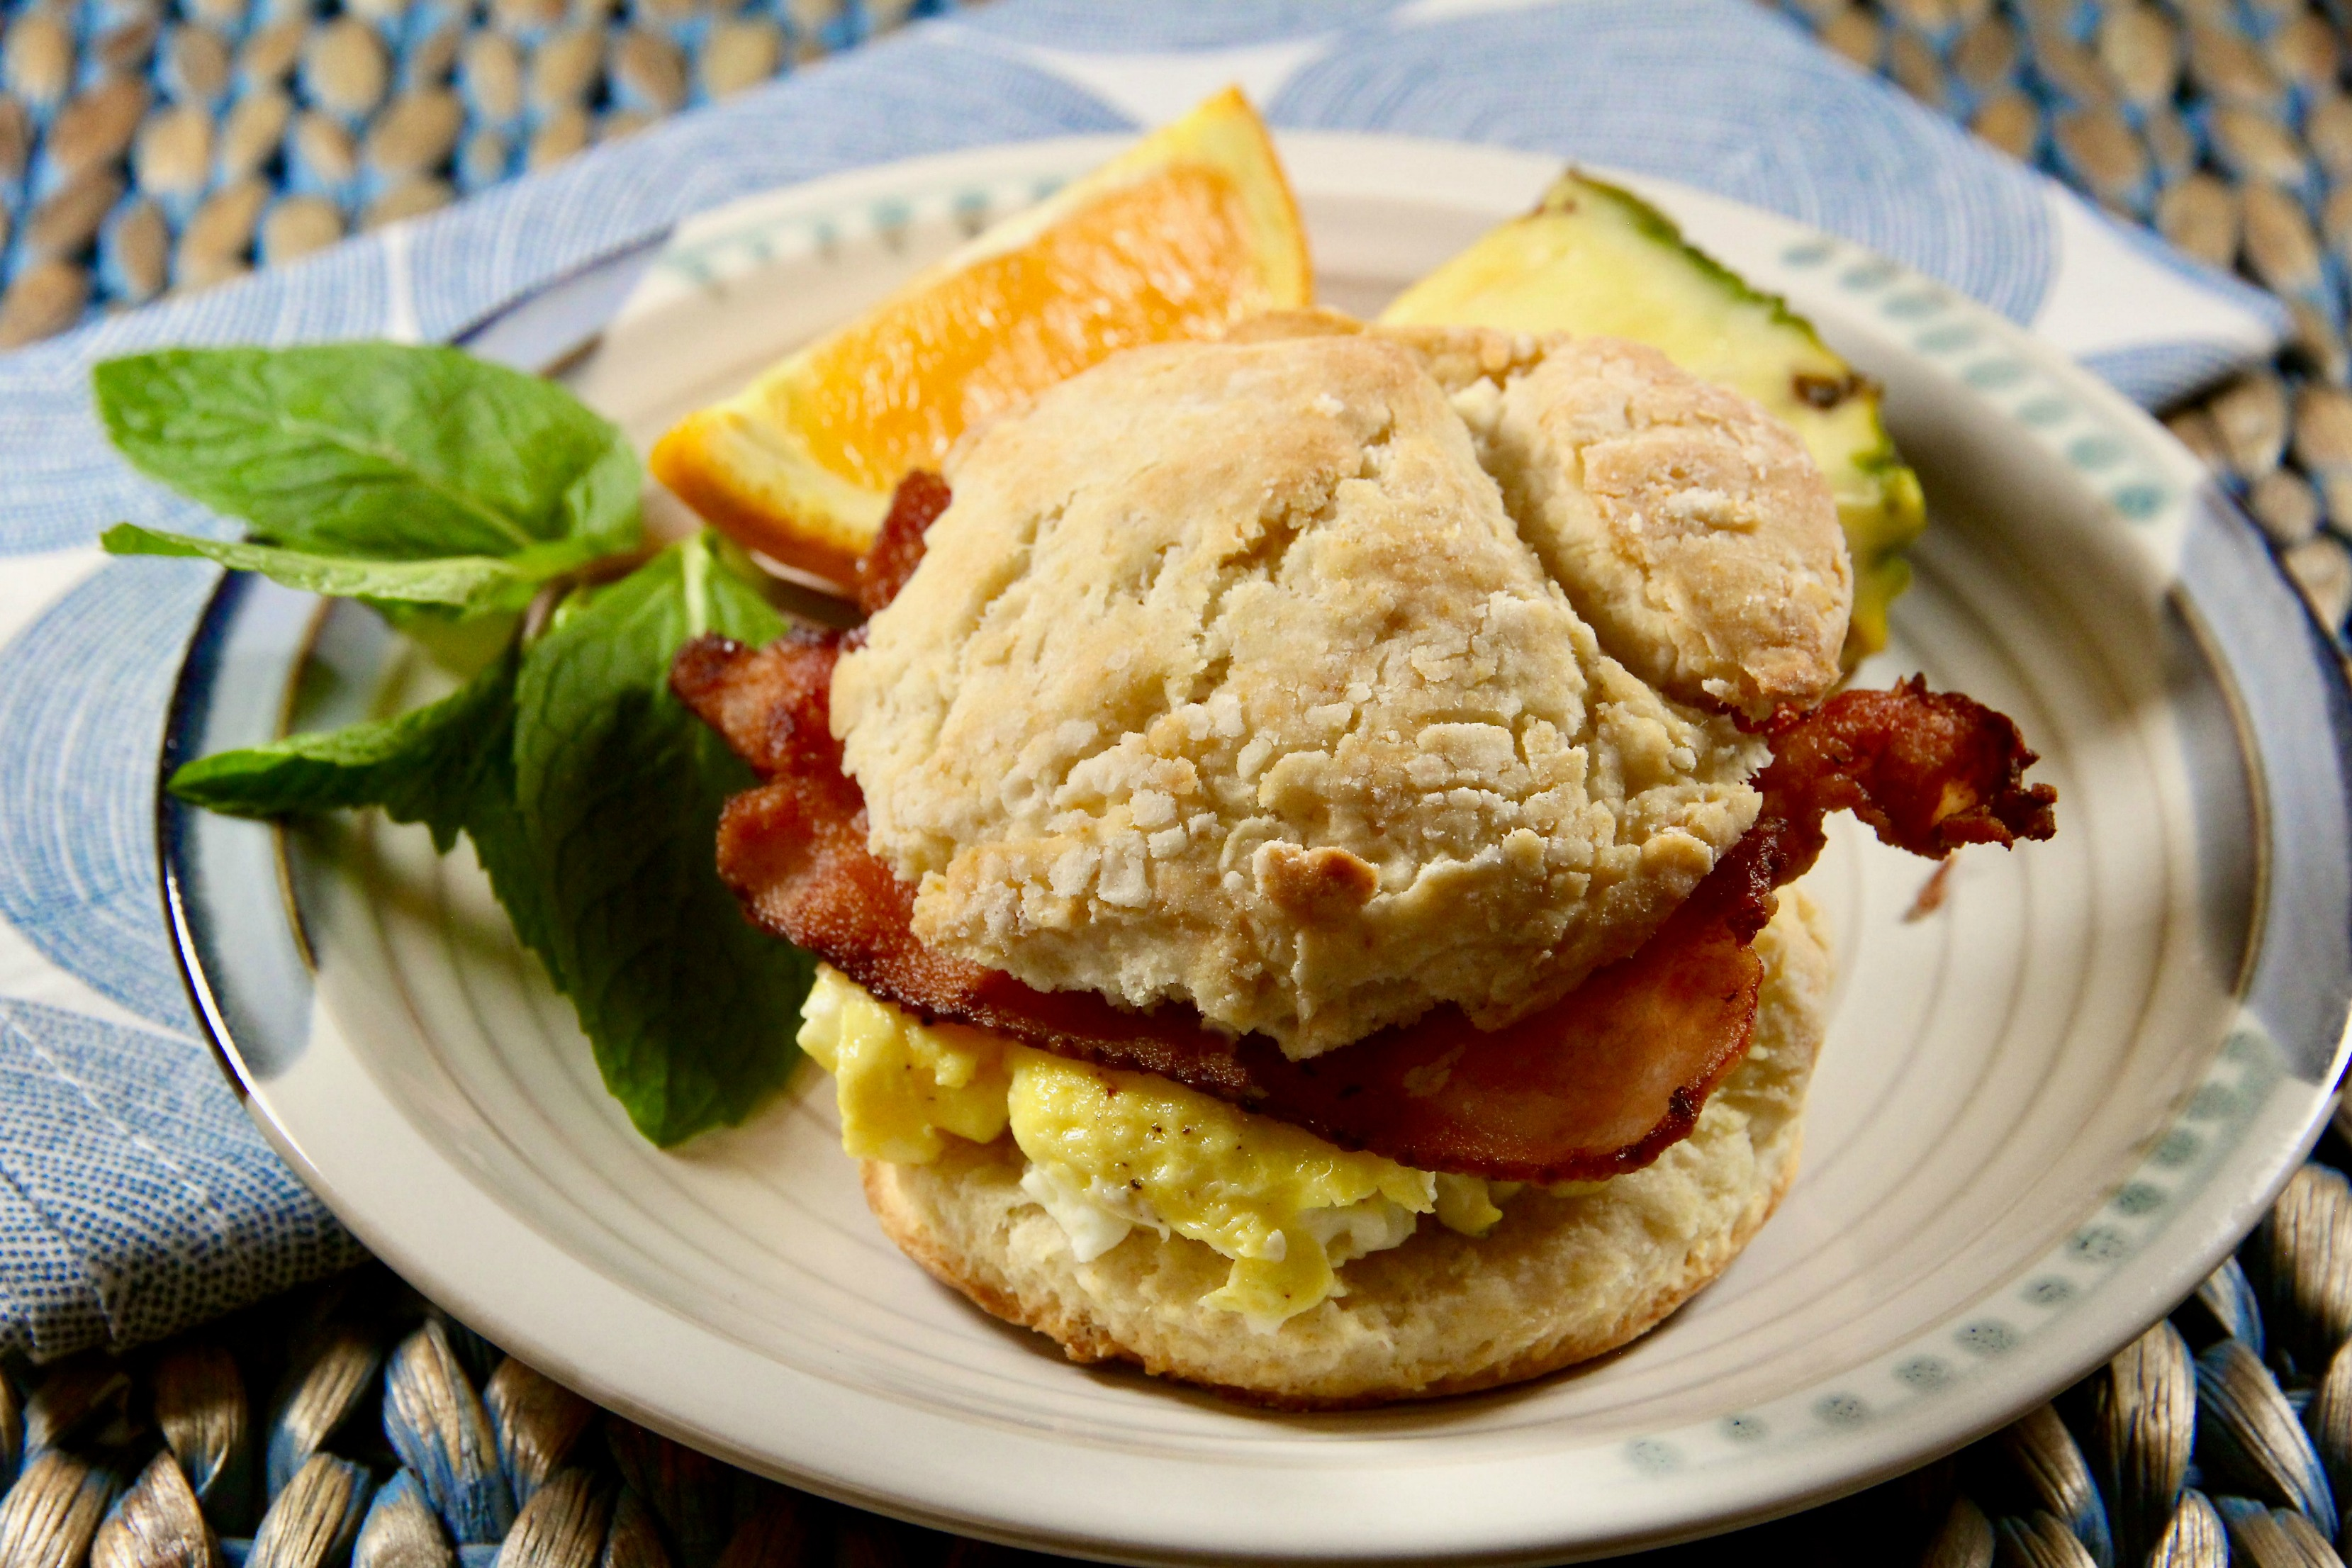 Bacon, Egg, and Cheese Buttermilk Biscuit Breakfast Sandwich